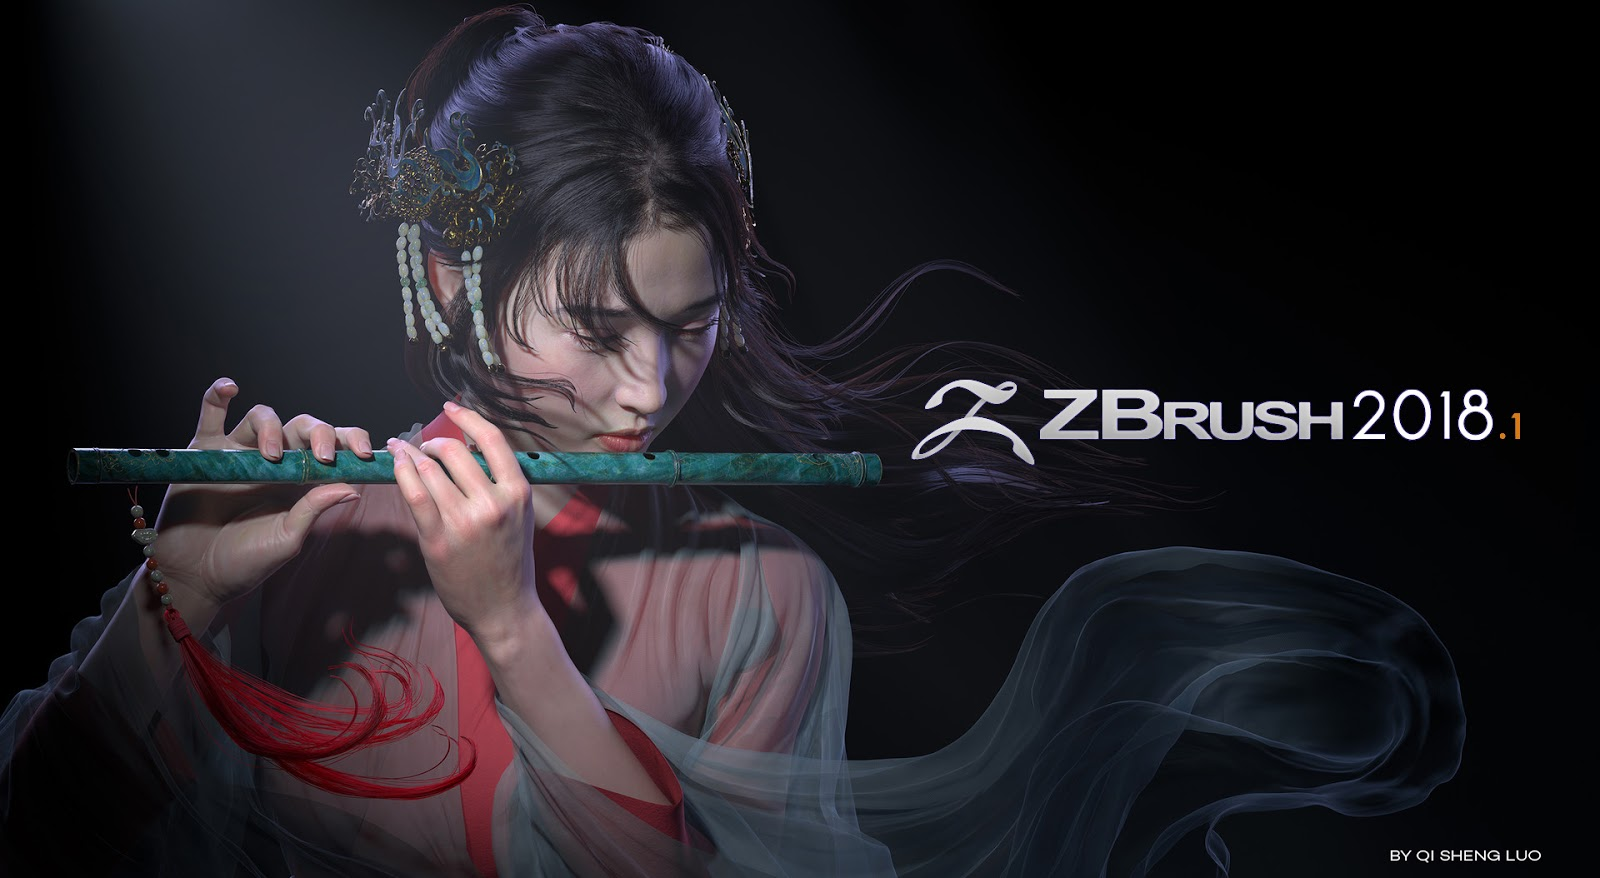 ZBrush 2018 1 Now Available | Computer Graphics Daily News